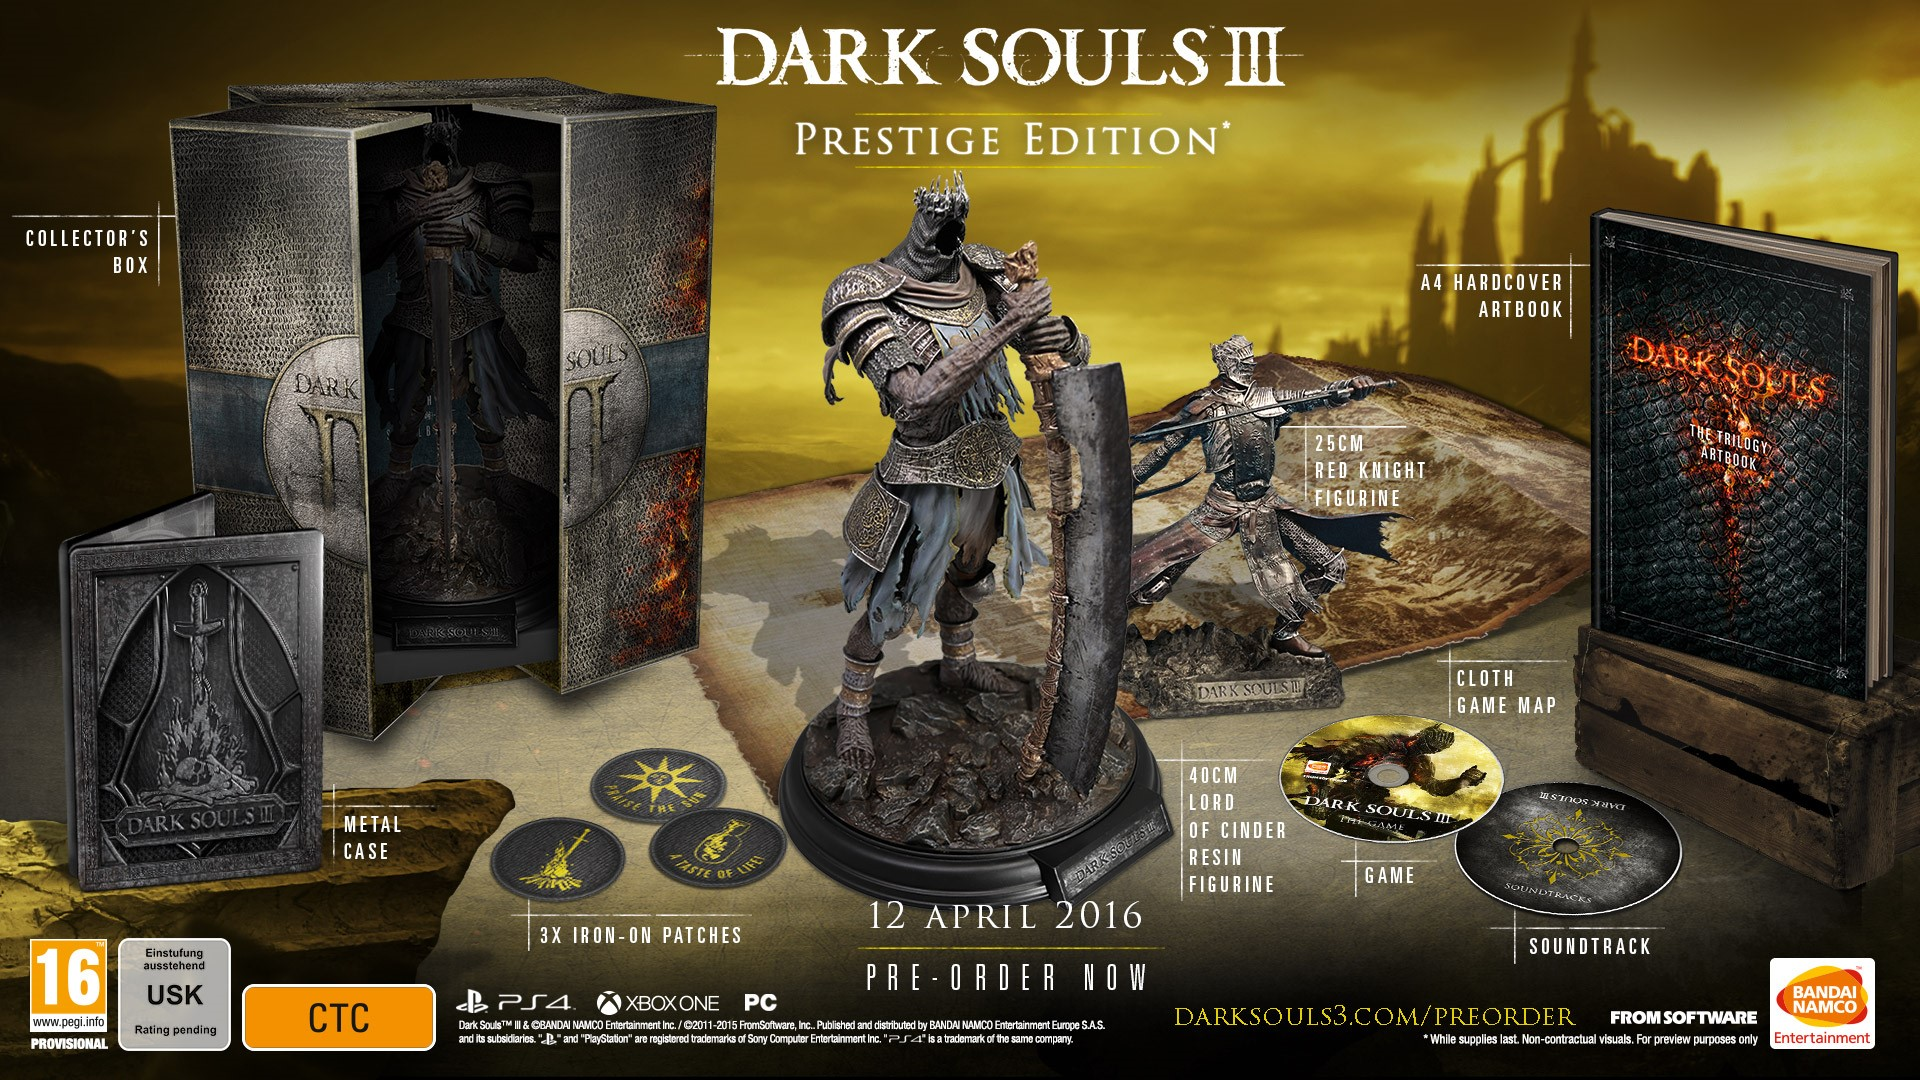 Dark souls iii early unboxing (day one edition) youtube.